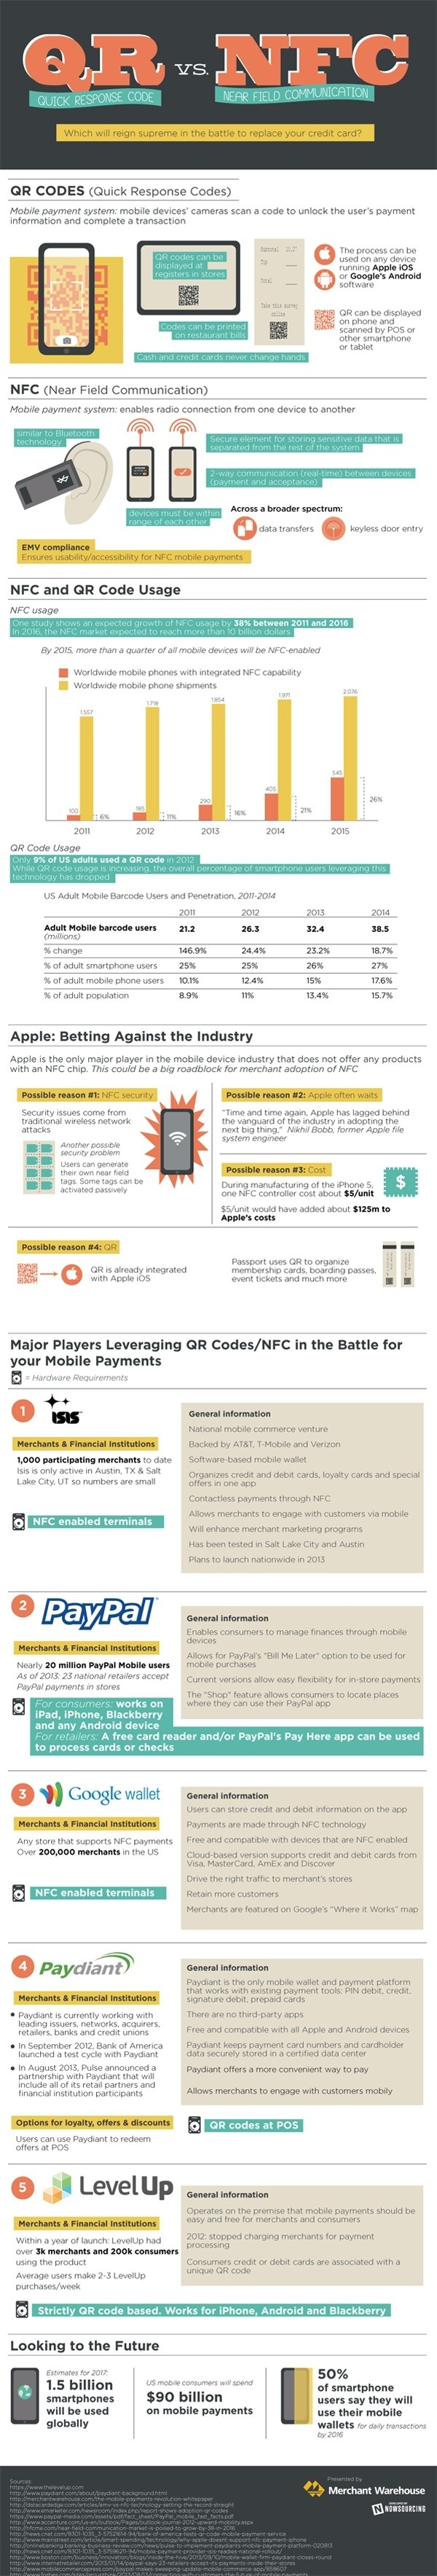 QR vs. NFC: Which will reign supreme in the battle to replace your credit cards? [infographic] #qr #apple #paypal #credit #wallet #codes #nfc #card #payment #level #mobile #up #google #paydiant